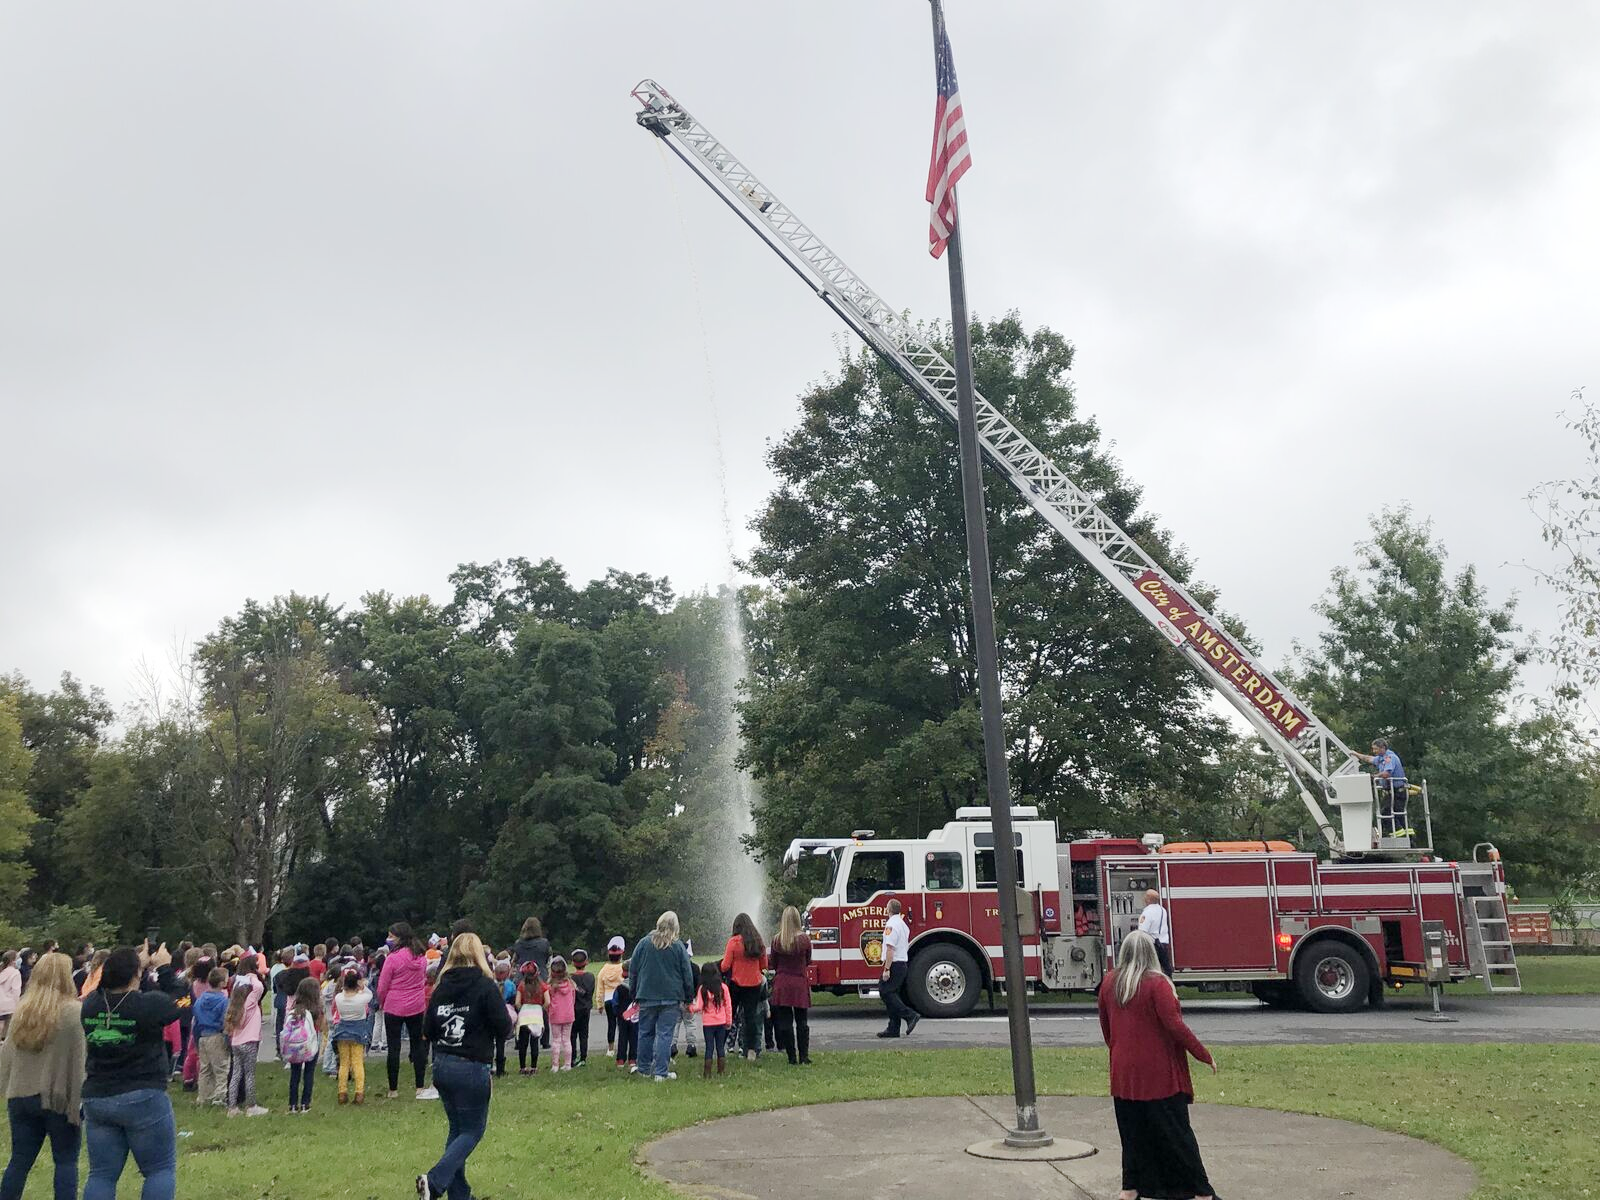 fire truck demonstration for students shooting water